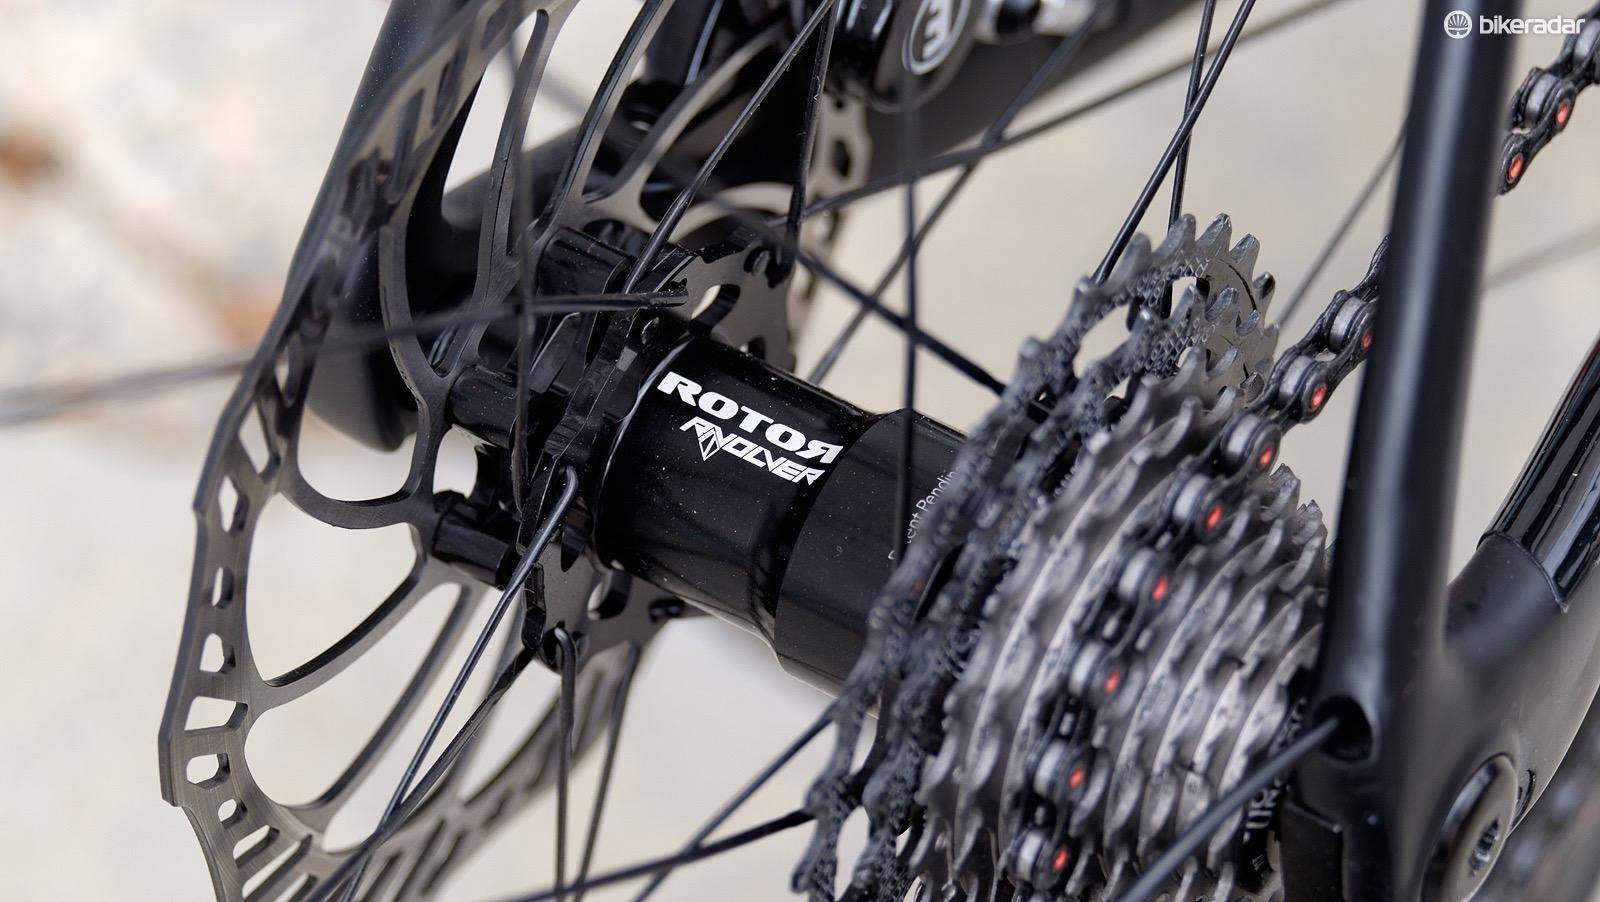 The relatively simple guts of Rotor's Rvolver hubs are designed to reduce friction when coasting